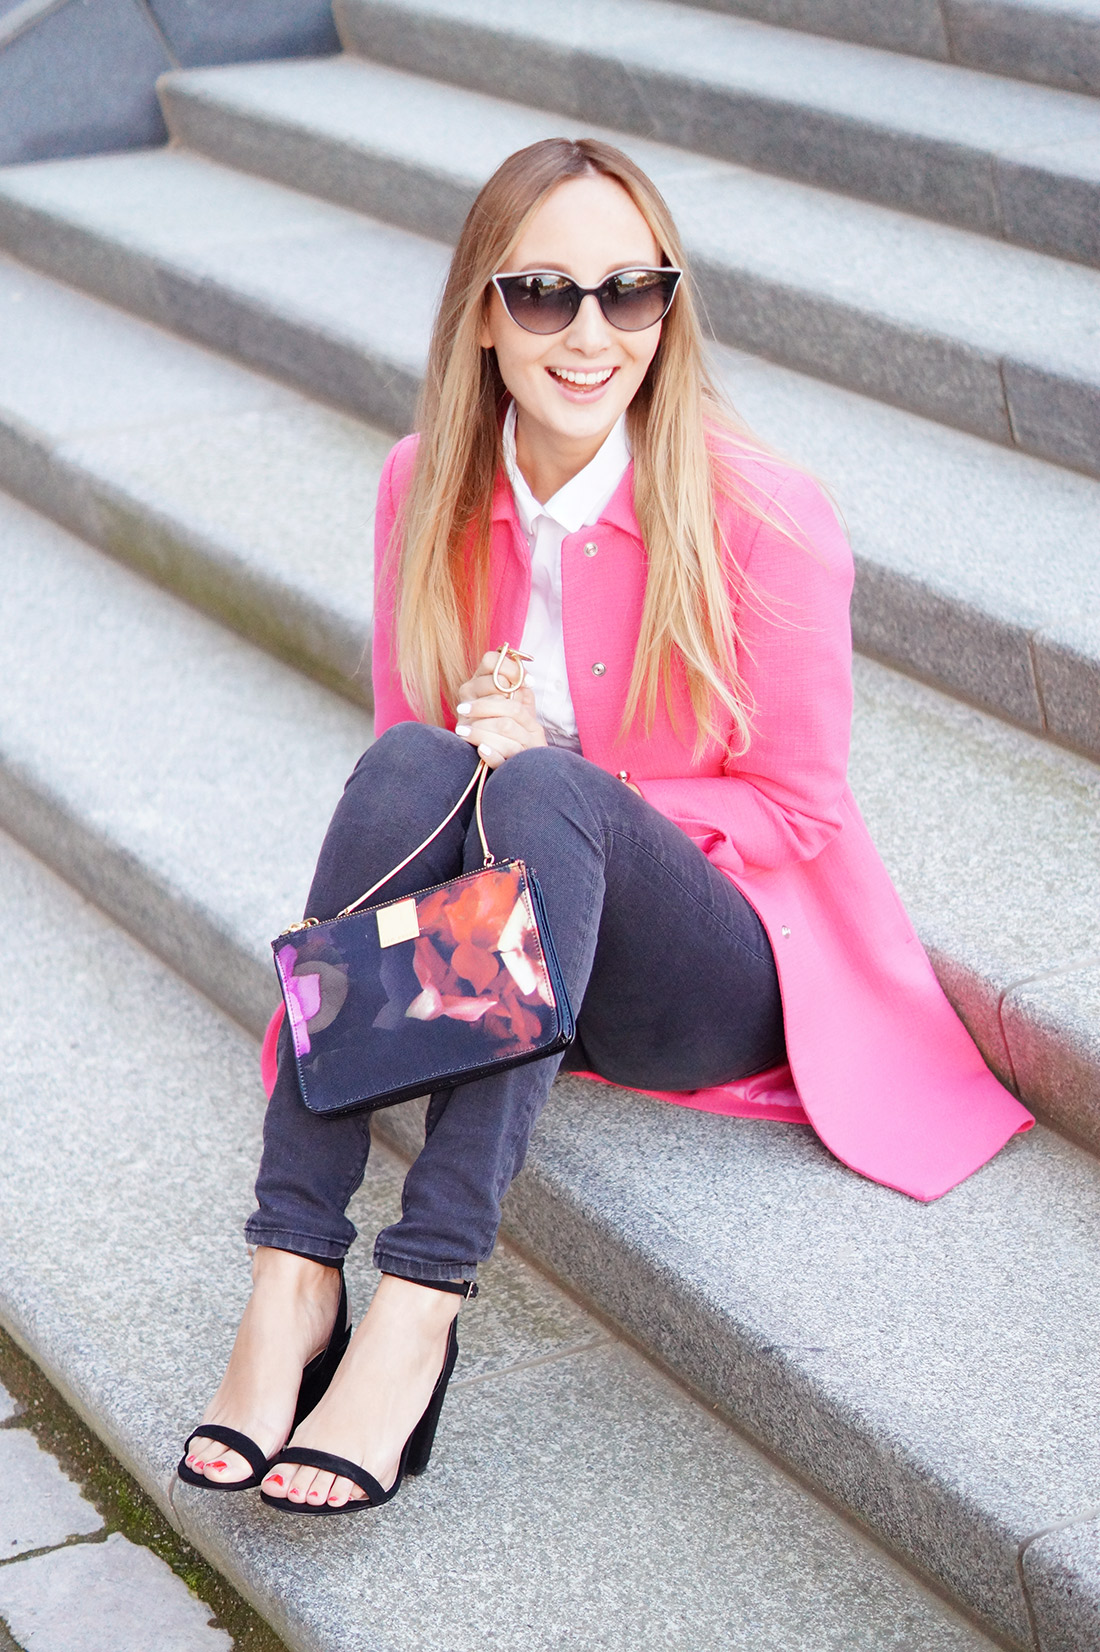 Bag-at-you---Fashion-blog---The-bag-of-Sandra-of-More-Style-Than-Fashion---Pink-coat-black-jeans-ted-baker-bag-and-smile